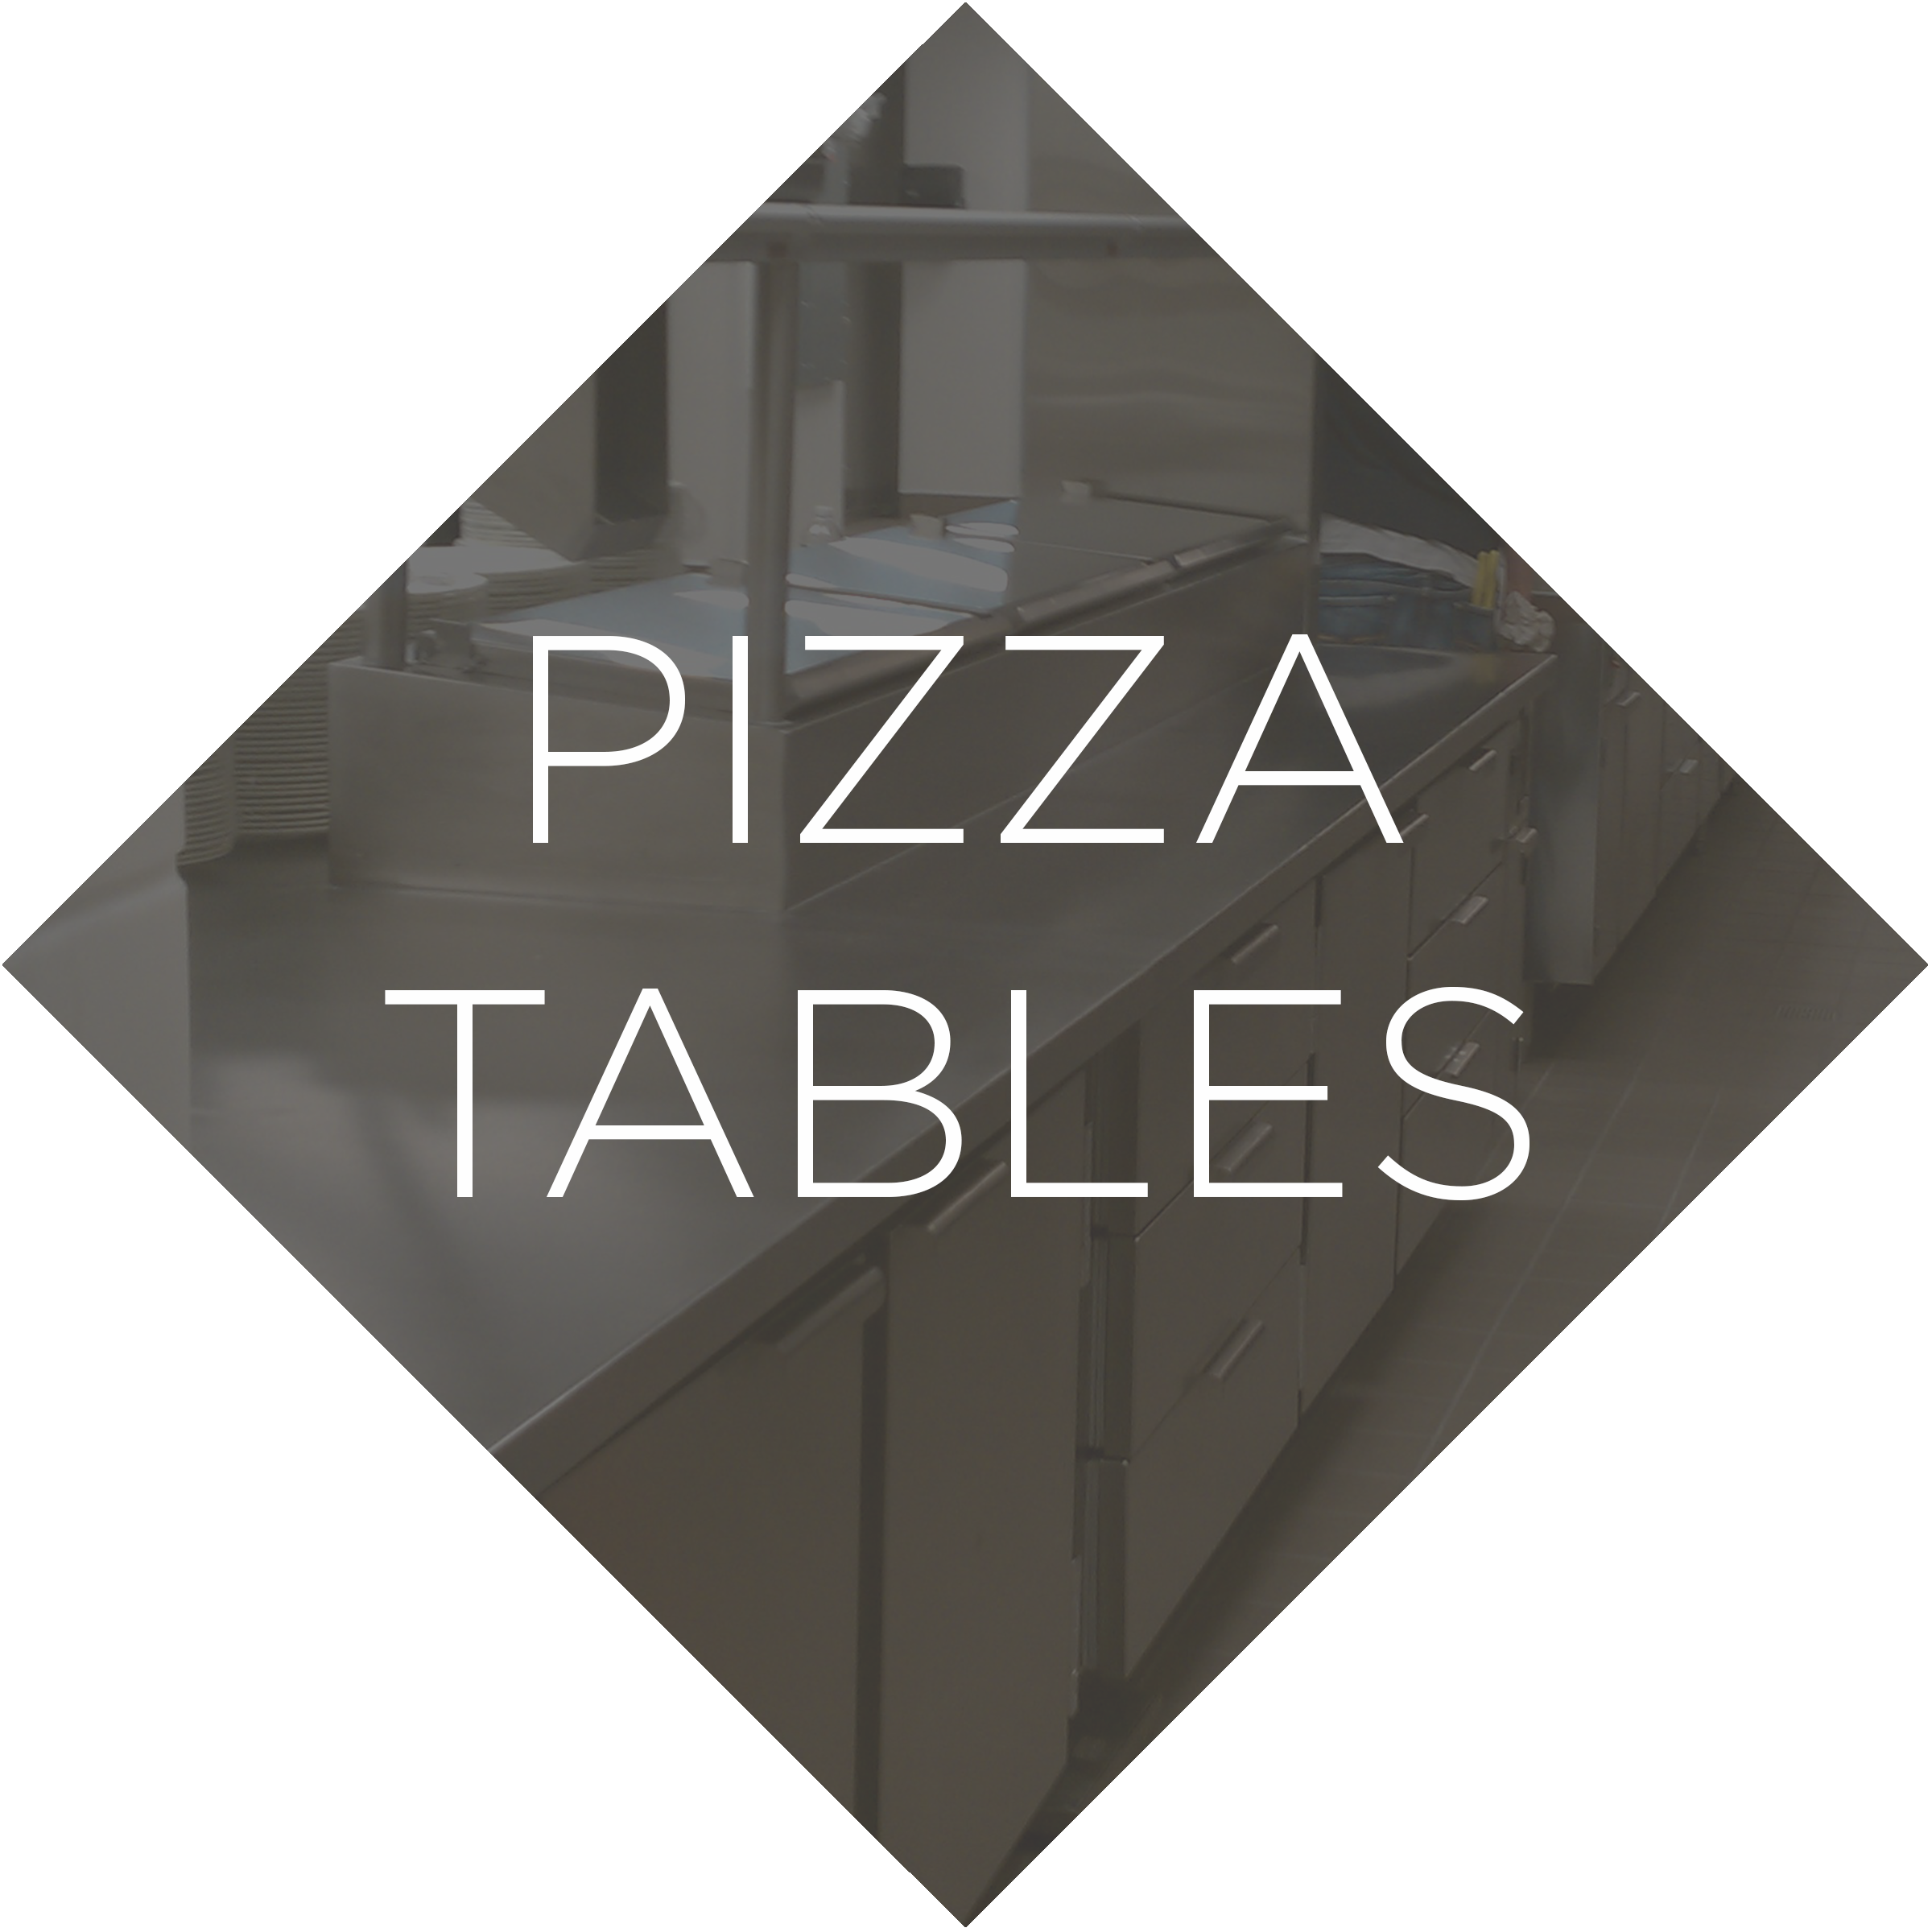 Pizza Tables.png